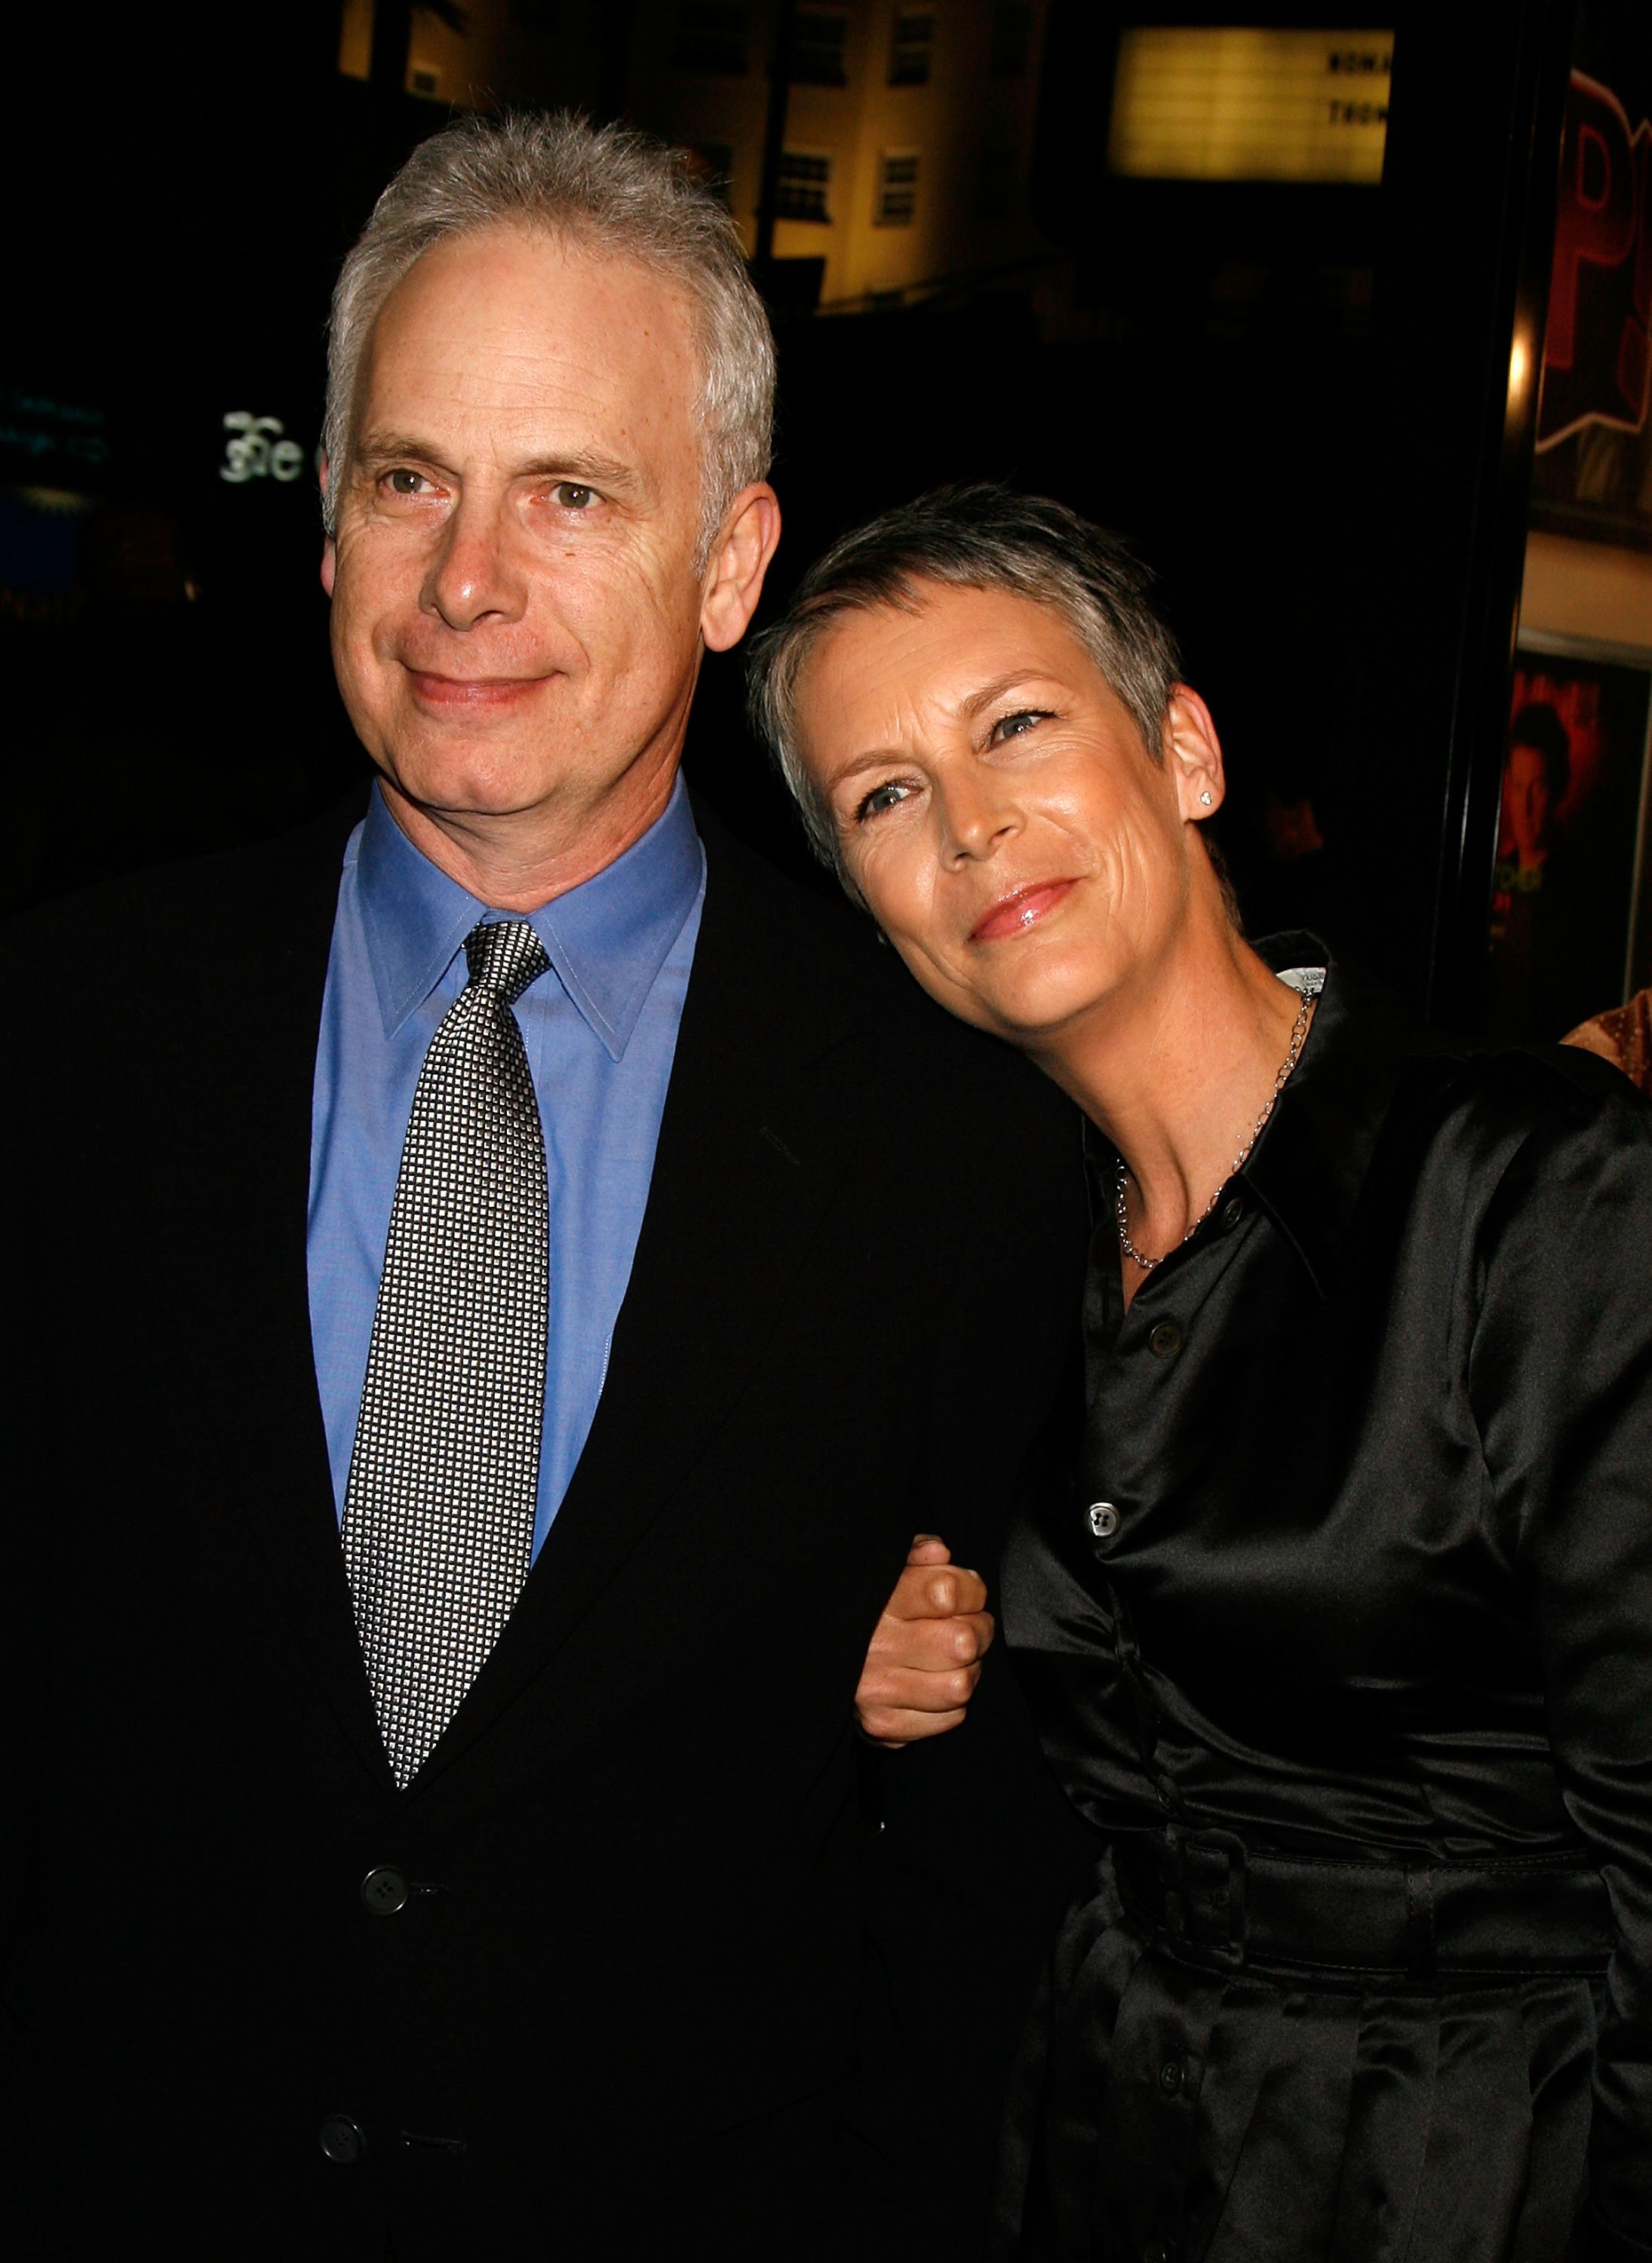 """Christopher Guest and Jamie Lee Curtis arrive at the premiere of """"Music and Lyrics"""" at the Grauman's Chinese Theatre on February 7, 2007 